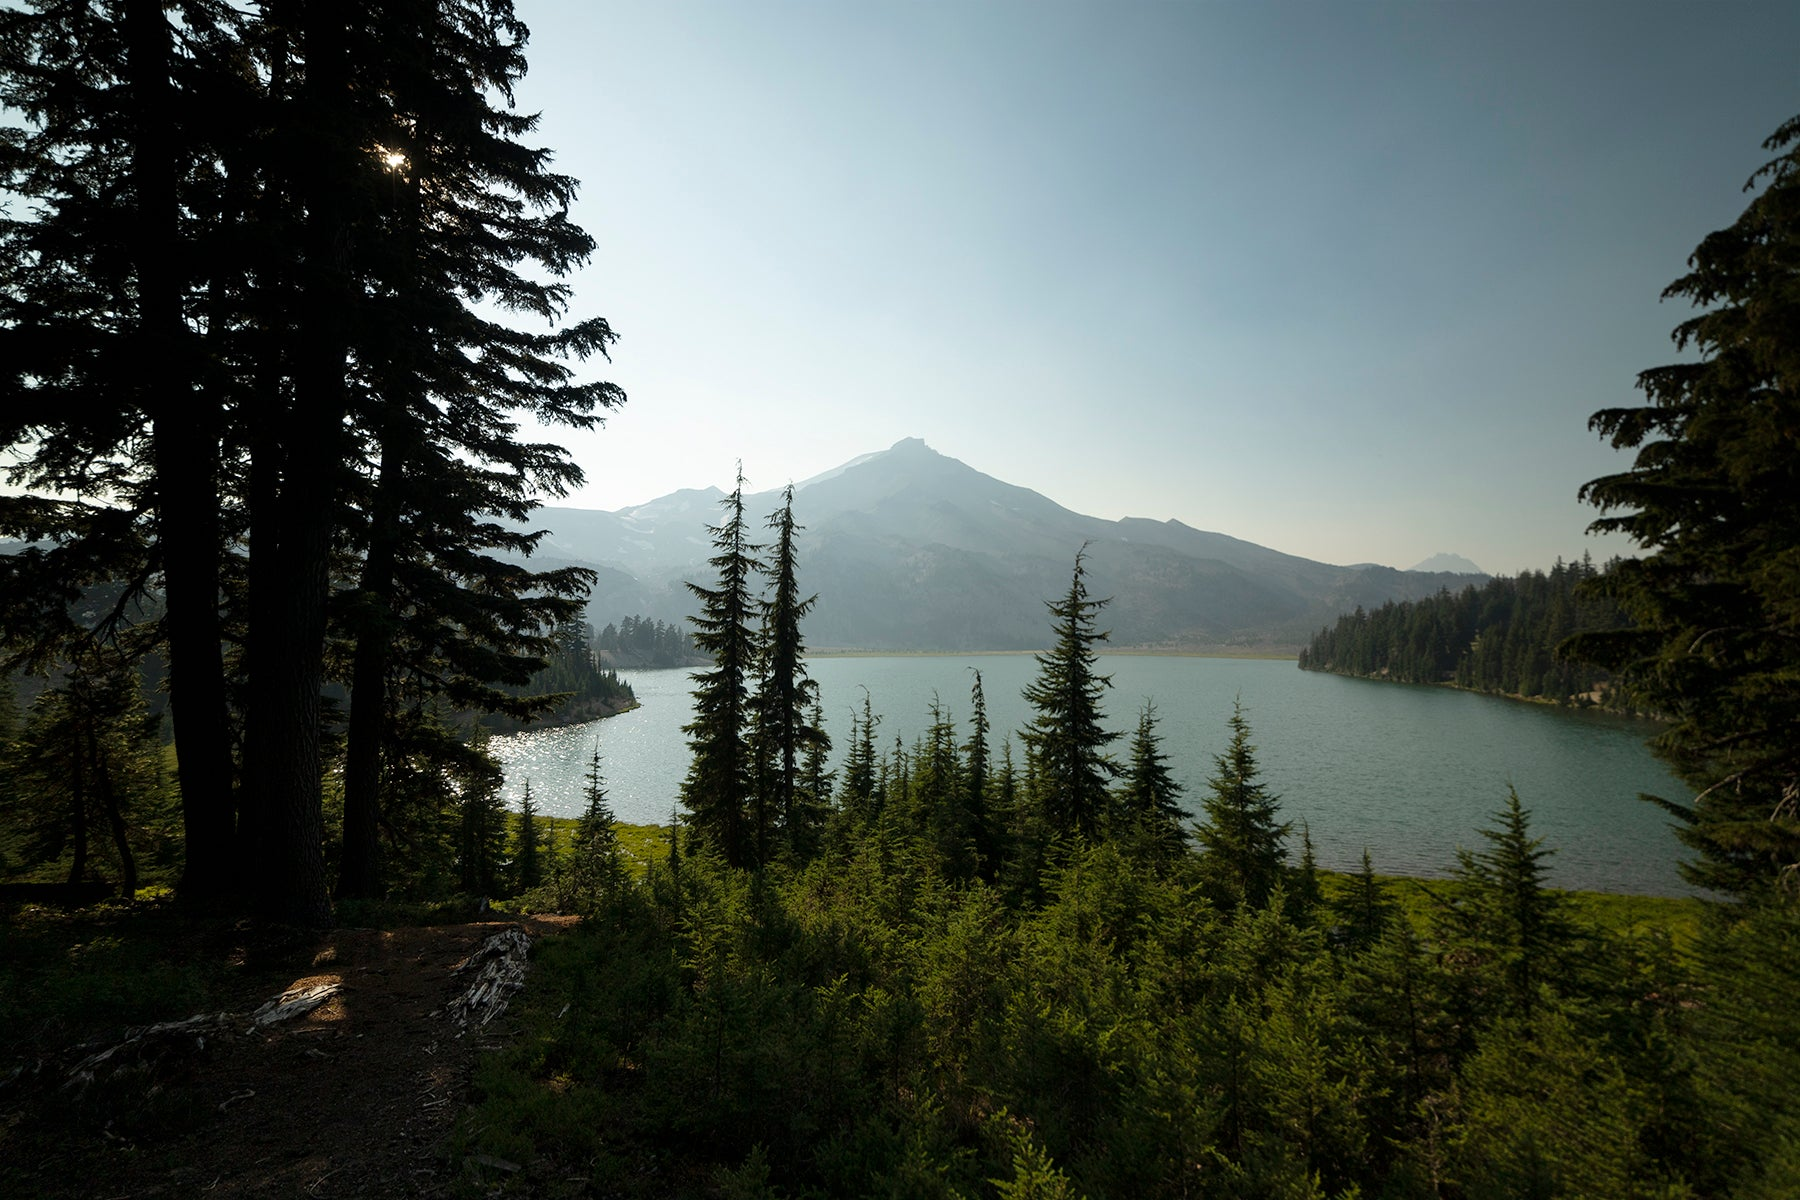 Green Lakes by Sisters Mountain range outside of Bend, Or